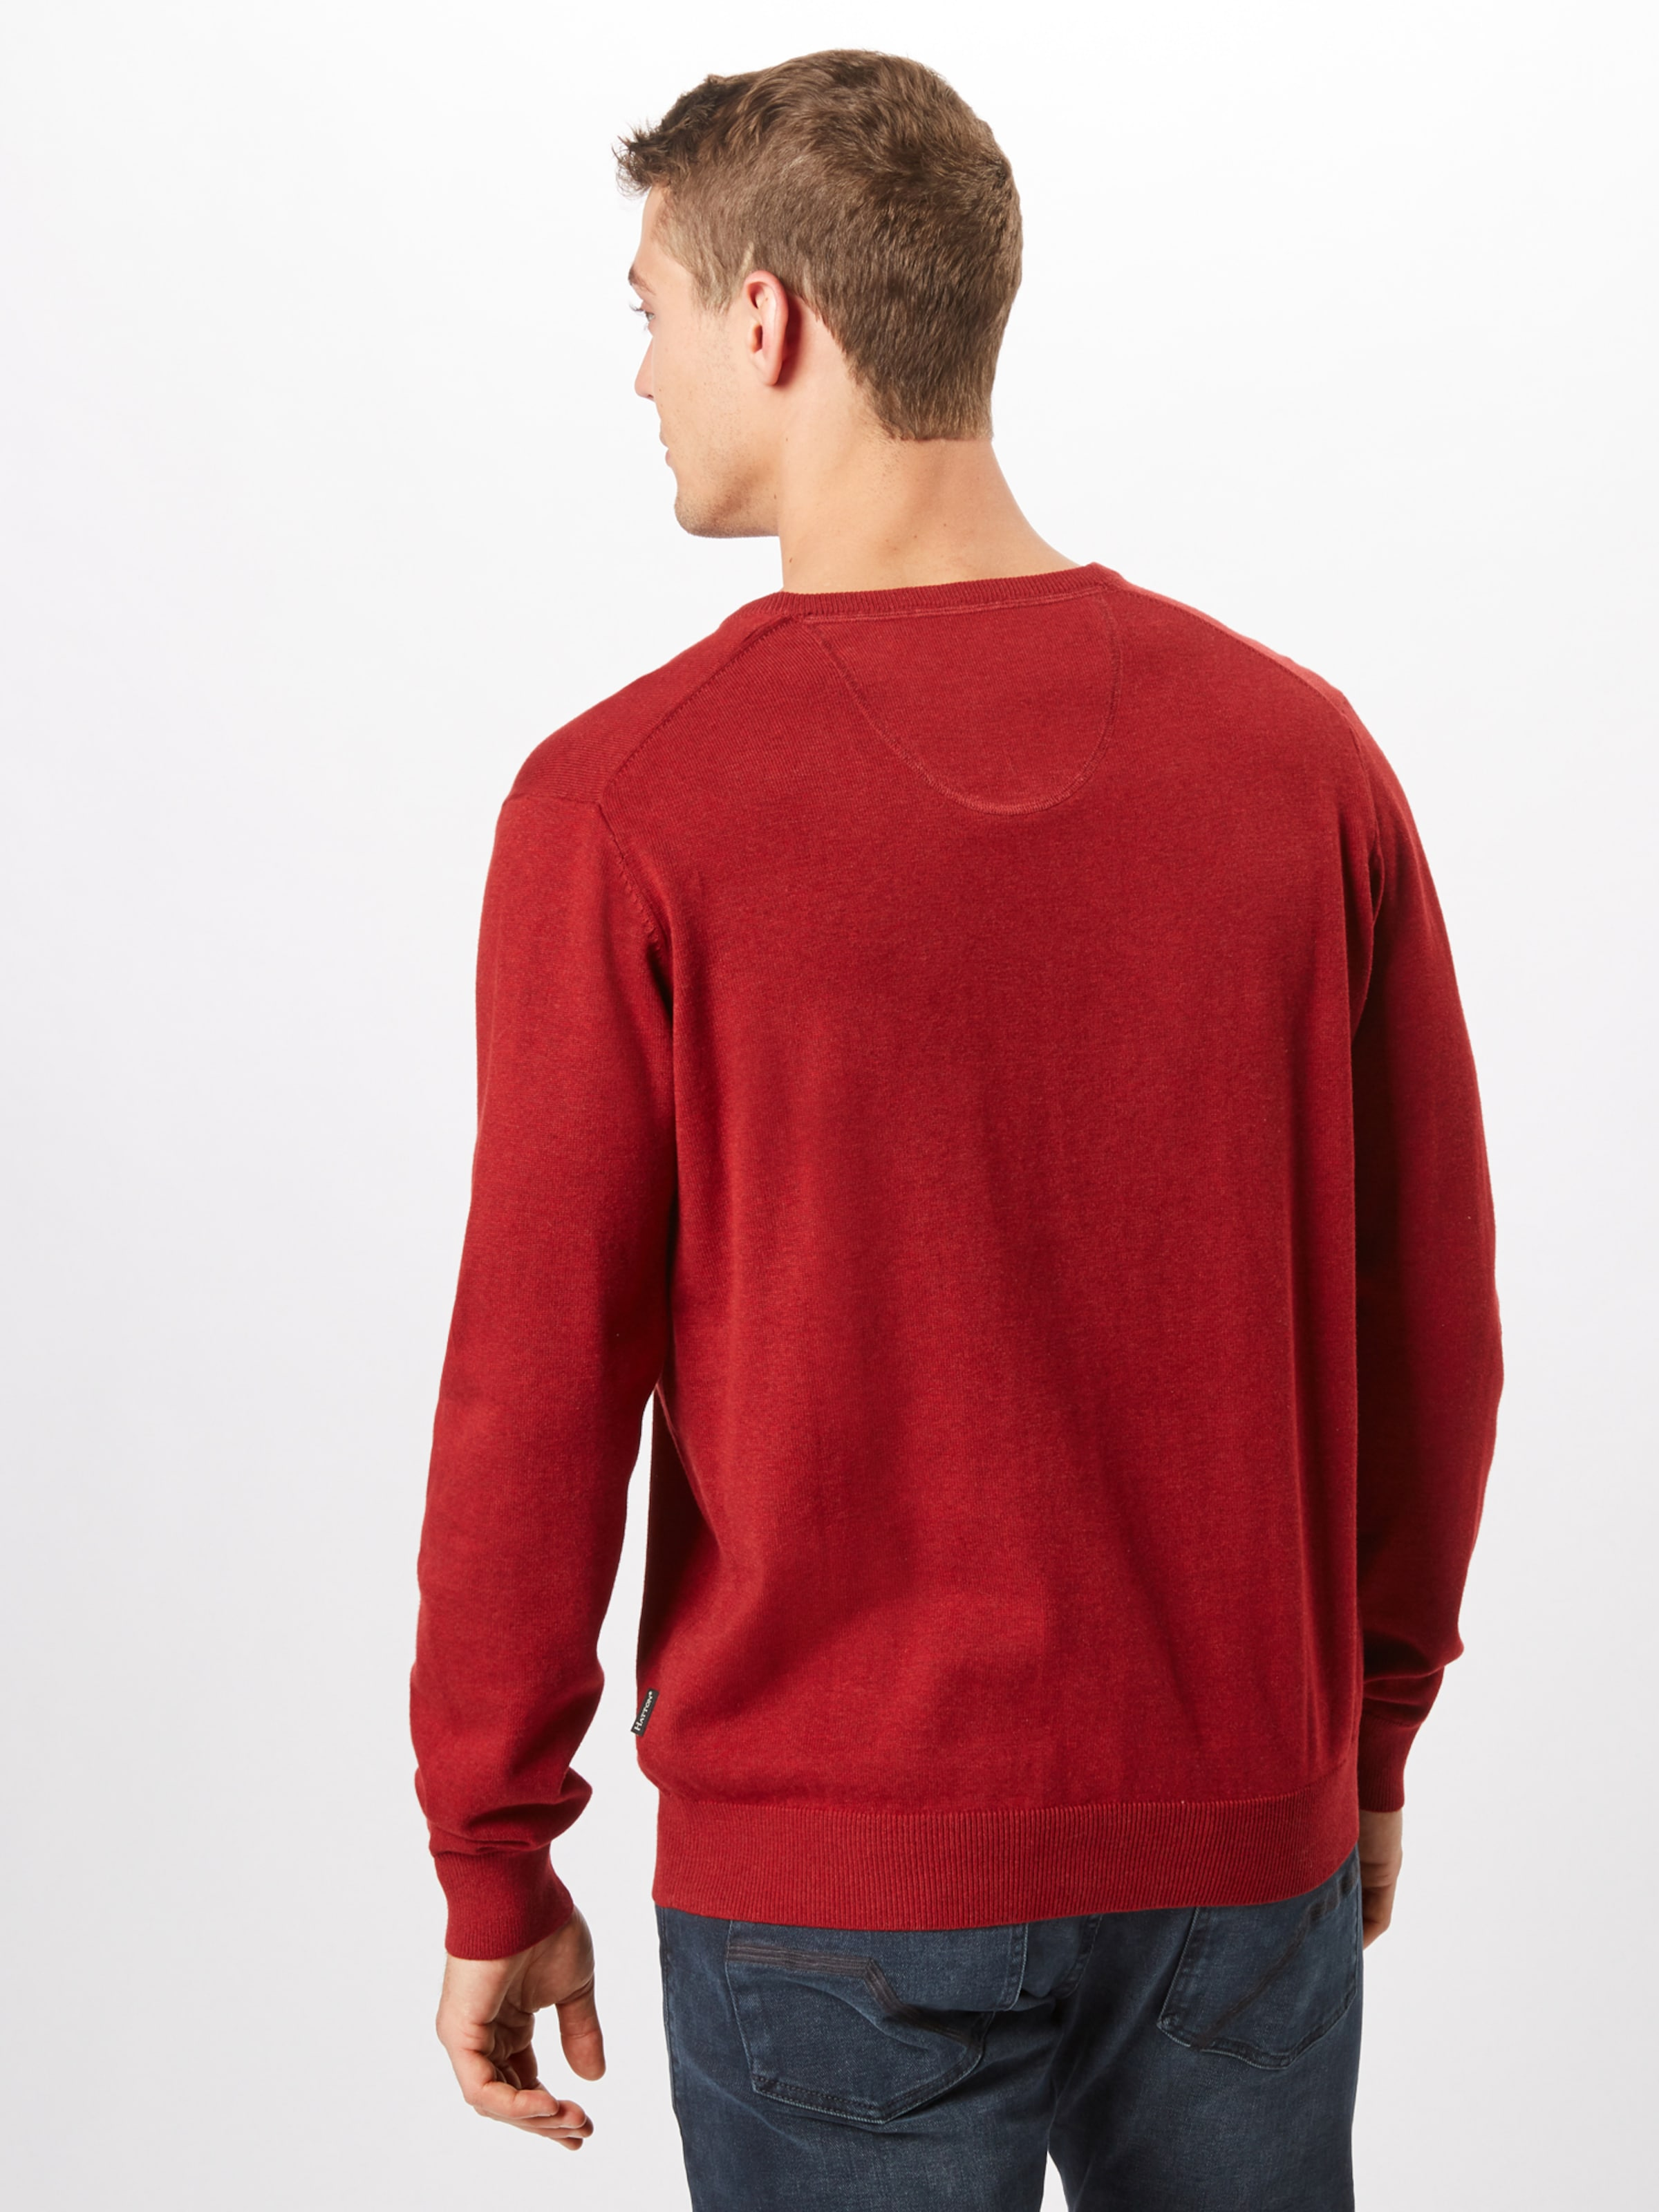 hatton Fynch Fynch hatton In Rot Pullover IgY6mfv7by